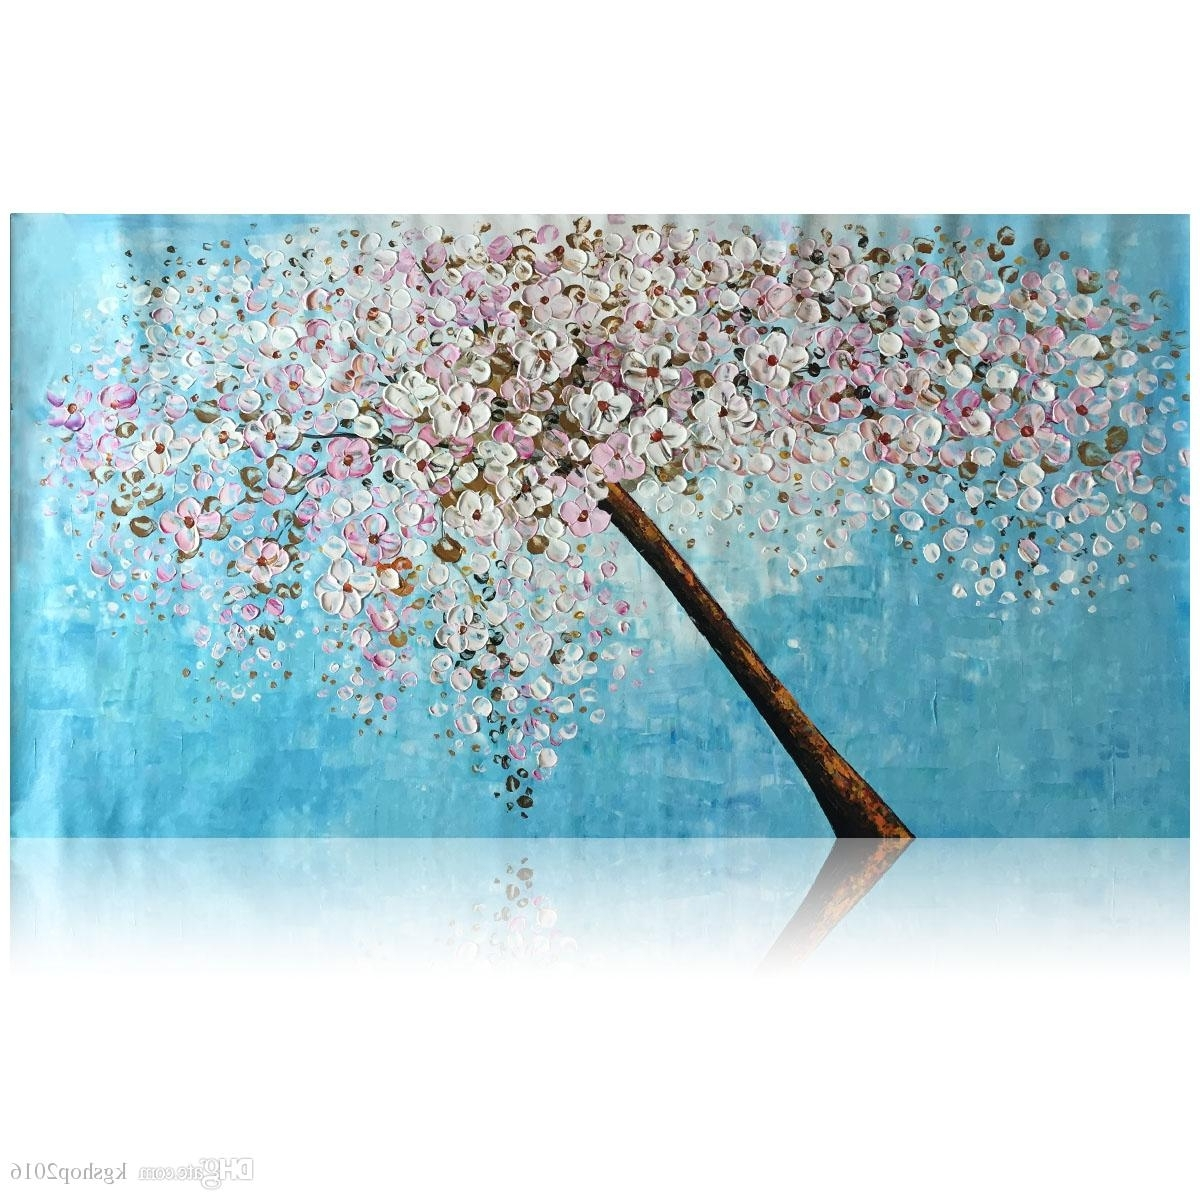 2018 Kgtech Thick Textured Acrylic Paintings 3D Floral Wall Art Throughout Recent Floral Wall Art (View 3 of 15)